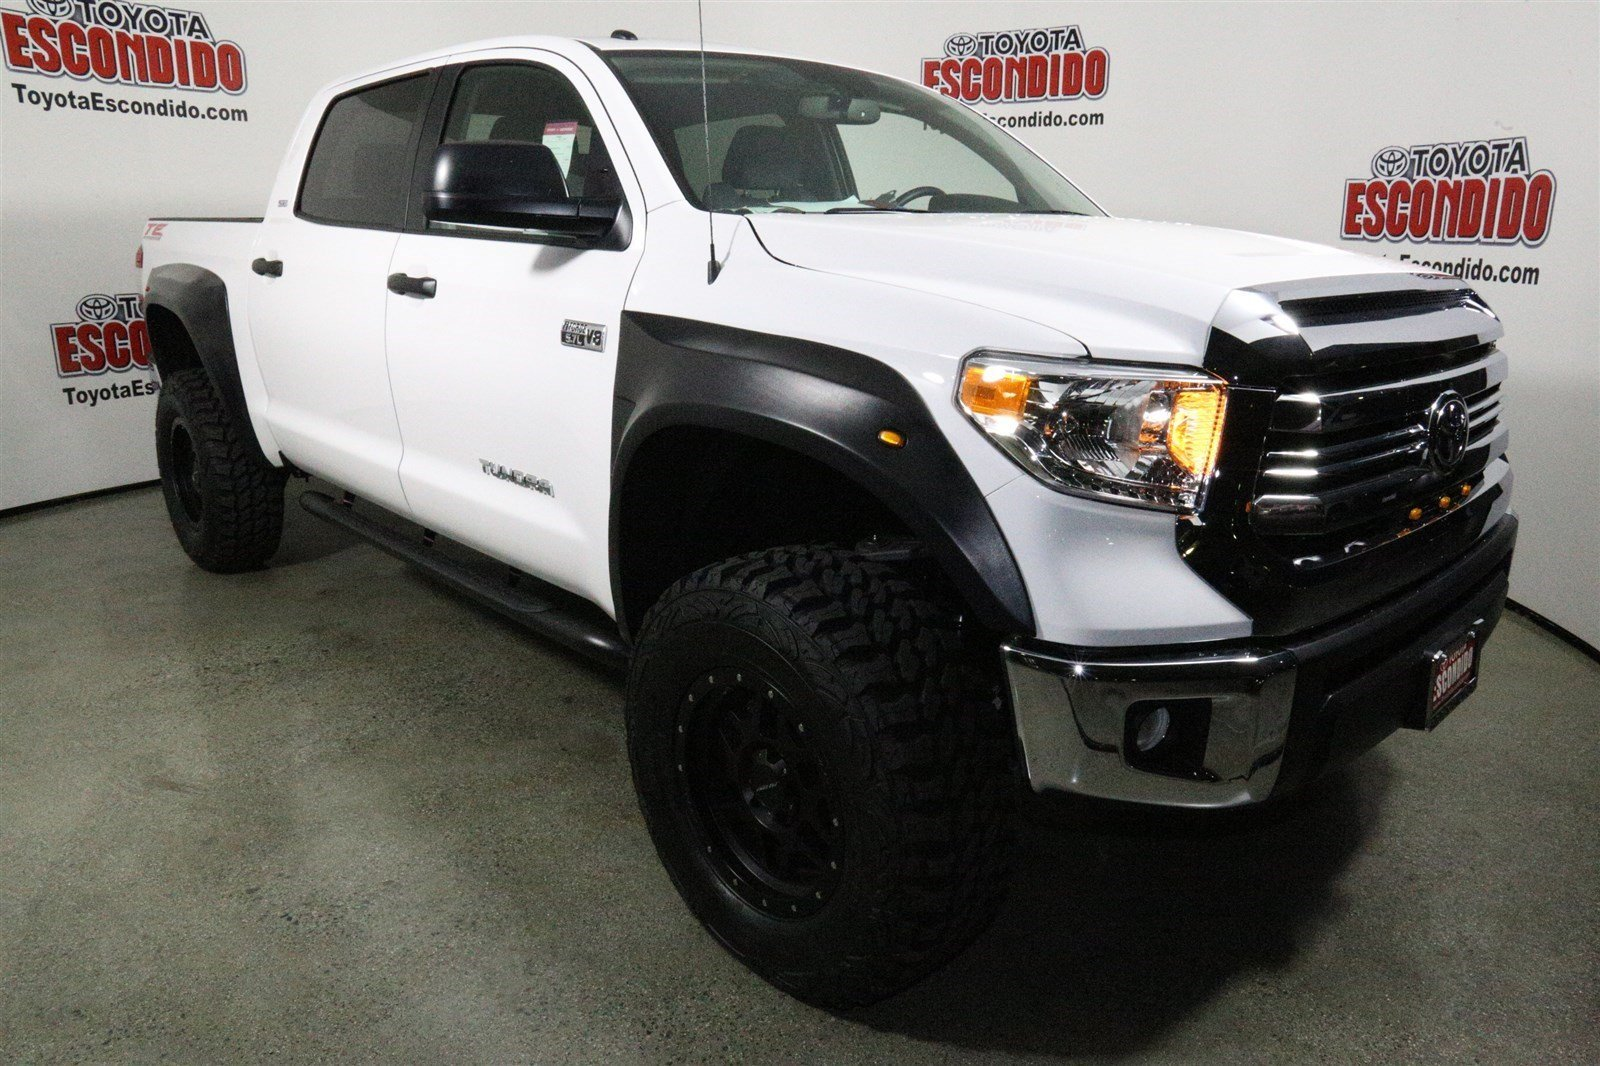 new 2017 toyota tundra sr5 4wd crew cab pickup in escondido 1014052 toyota escondido. Black Bedroom Furniture Sets. Home Design Ideas